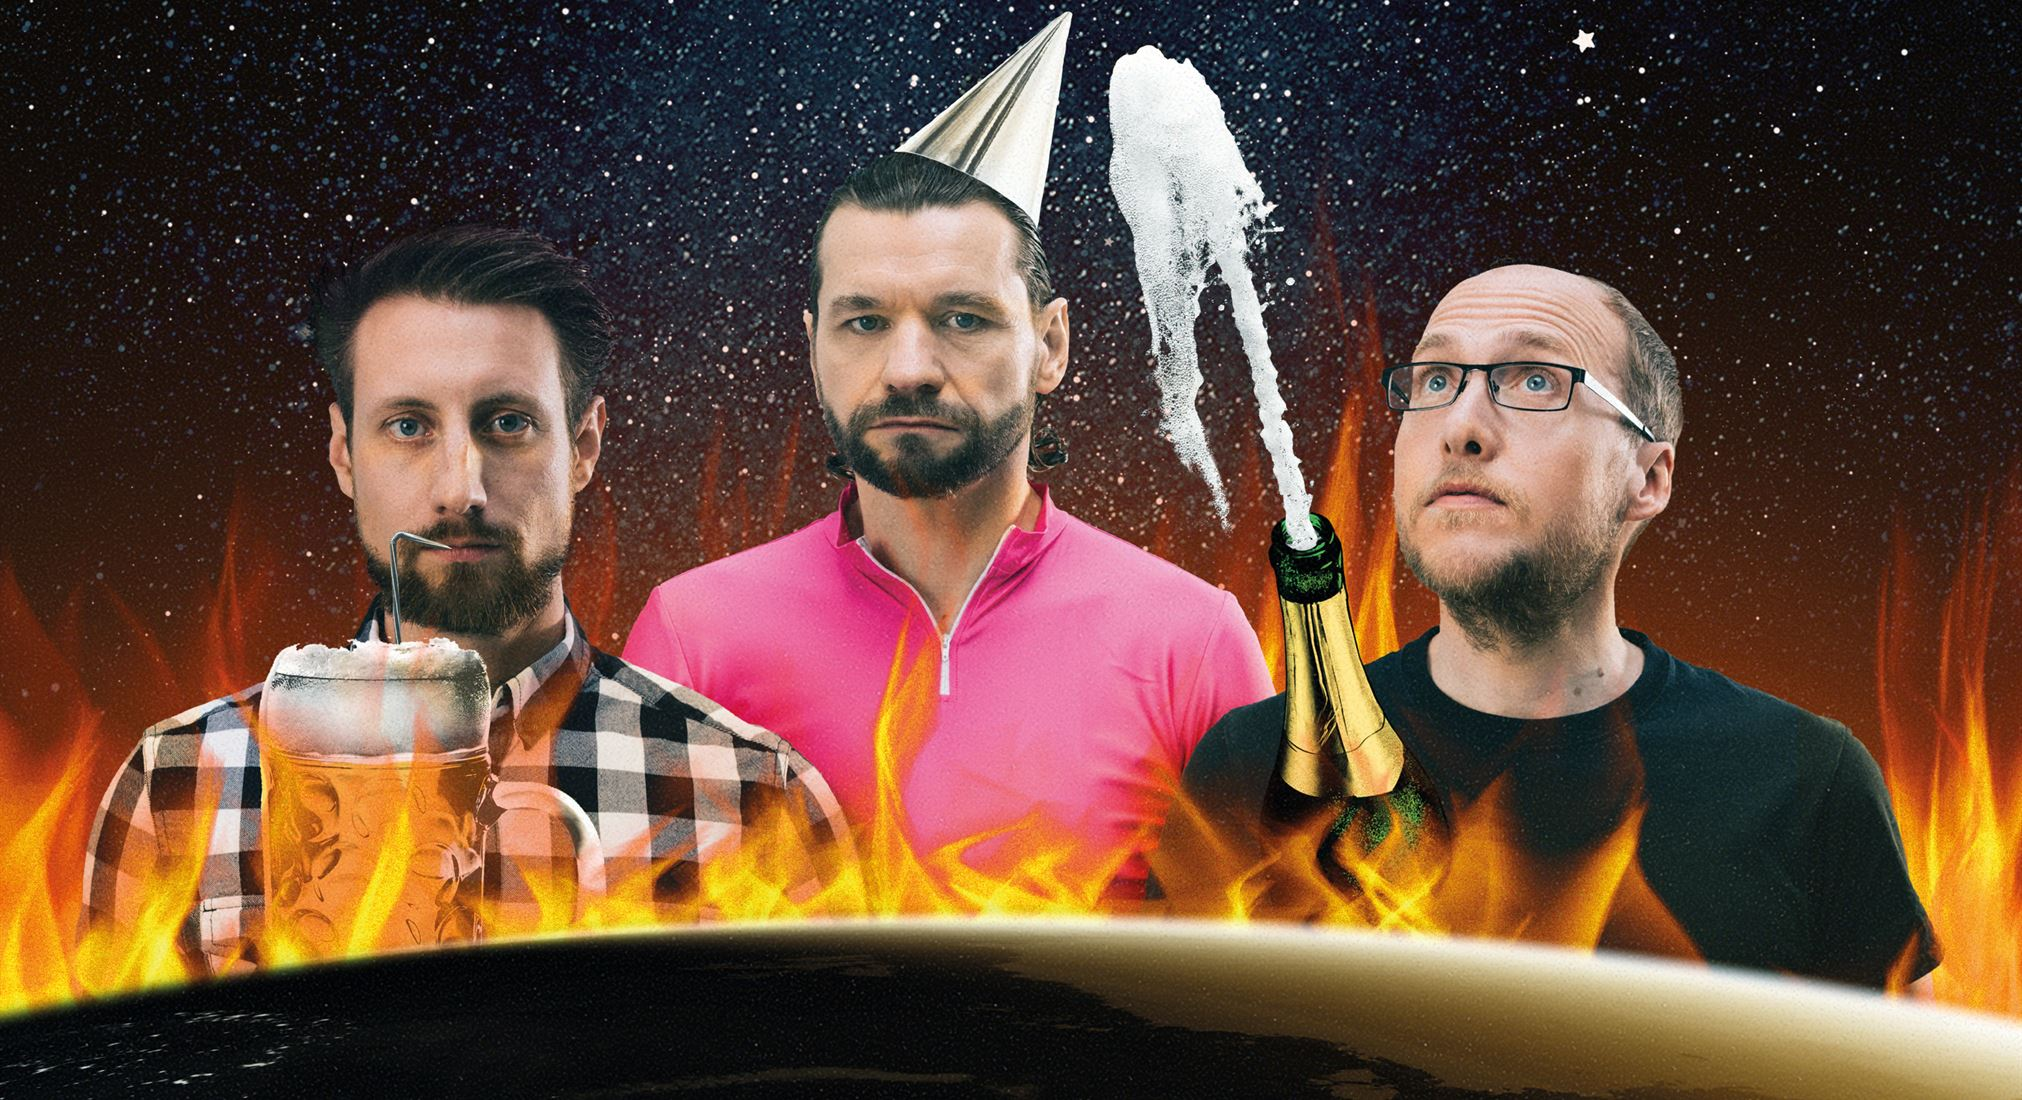 Science Busters am 28.04.2021 um 20:00 Uhr